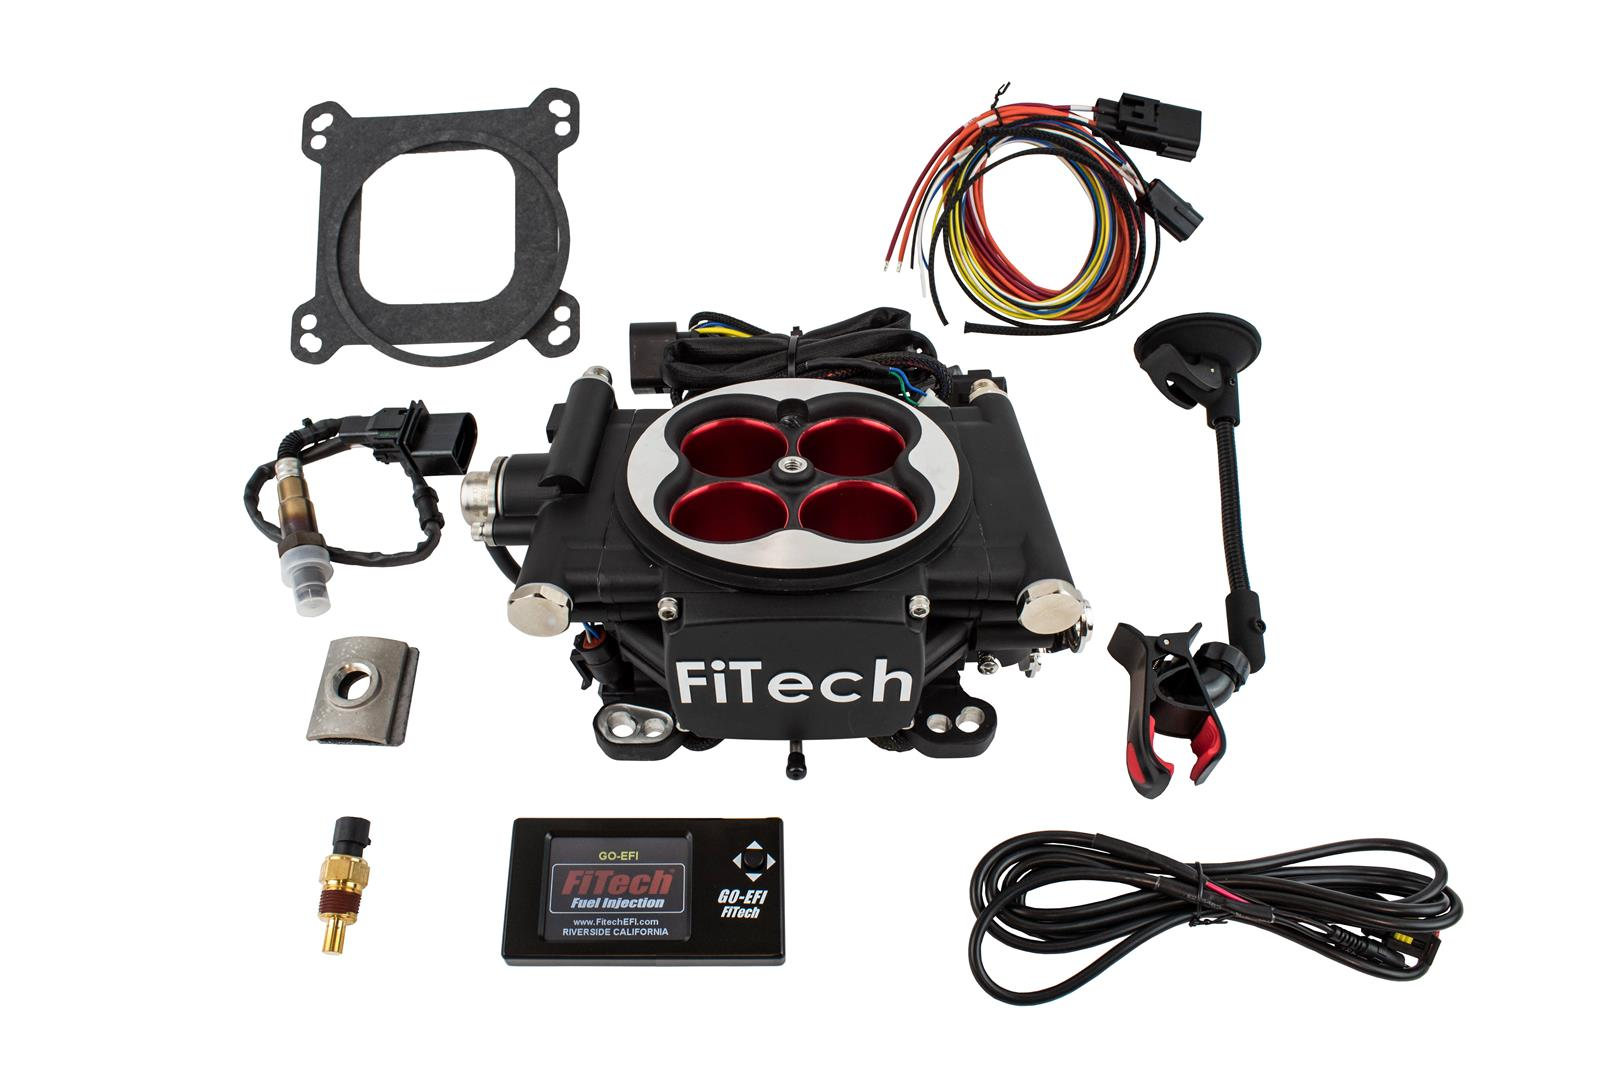 FiTech Go EFI 4 Power Adder 600 HP Self-Tuning Fuel Injection Systems 30004